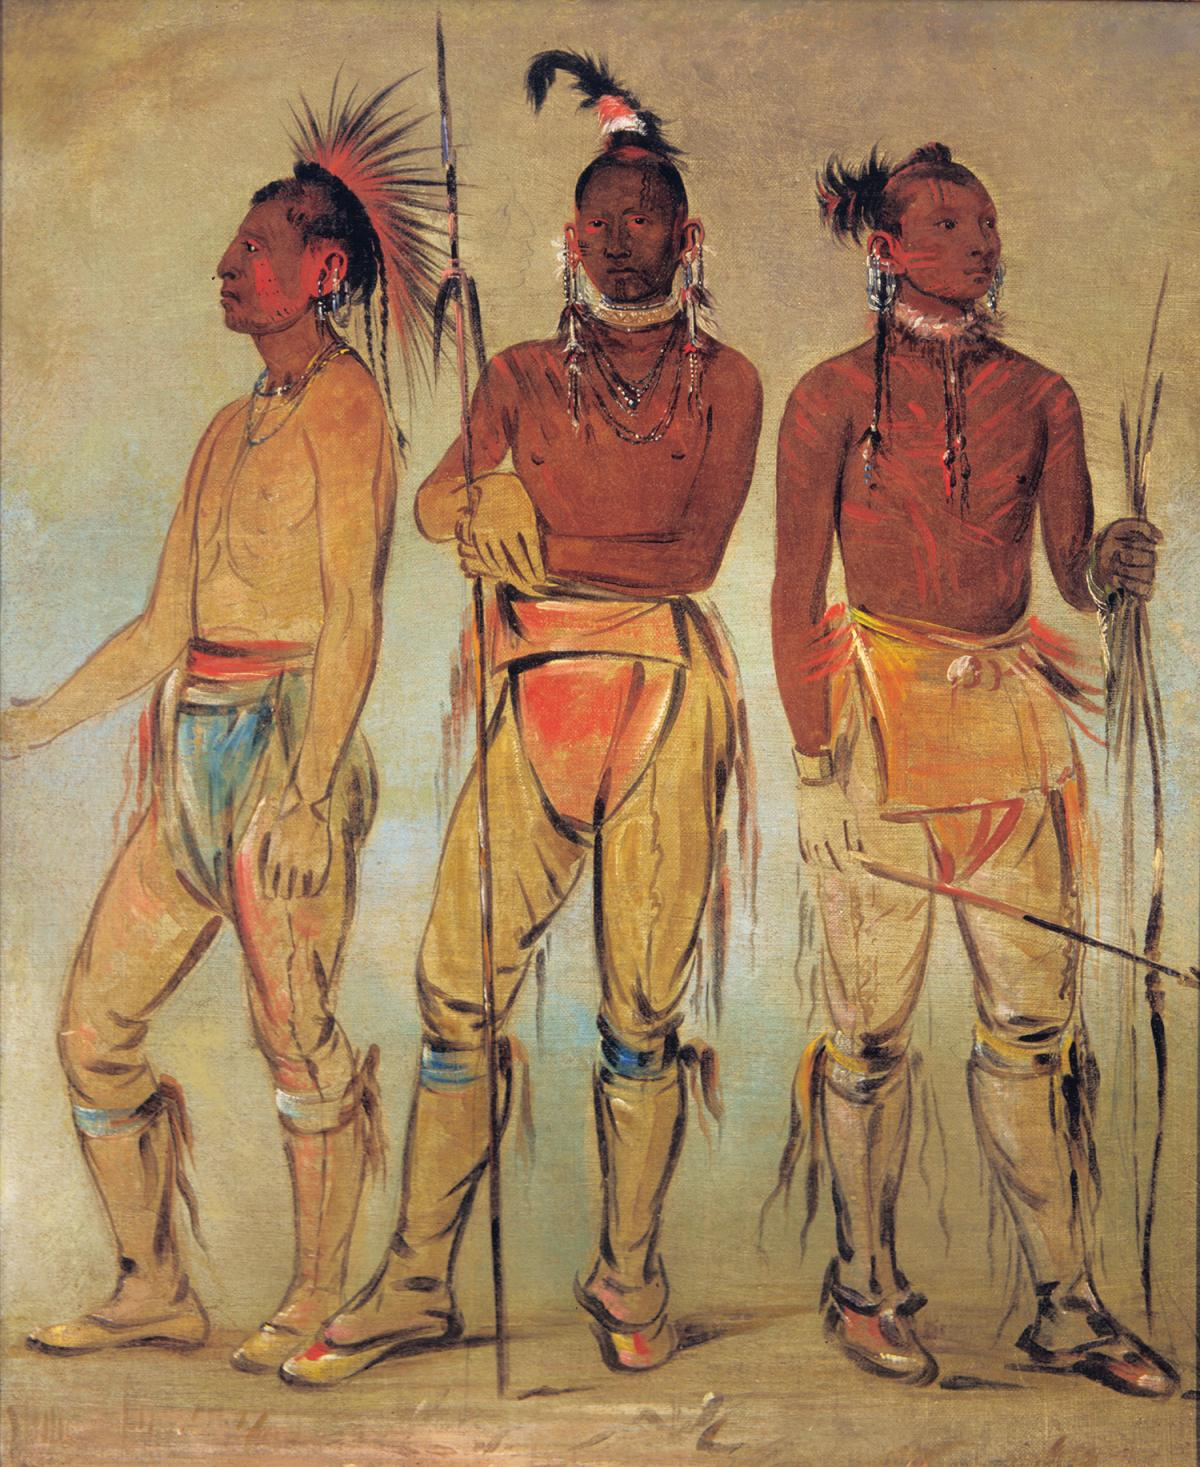 Three osage warriors, holding spears, wearing loincloths, sandals and feathered headbands